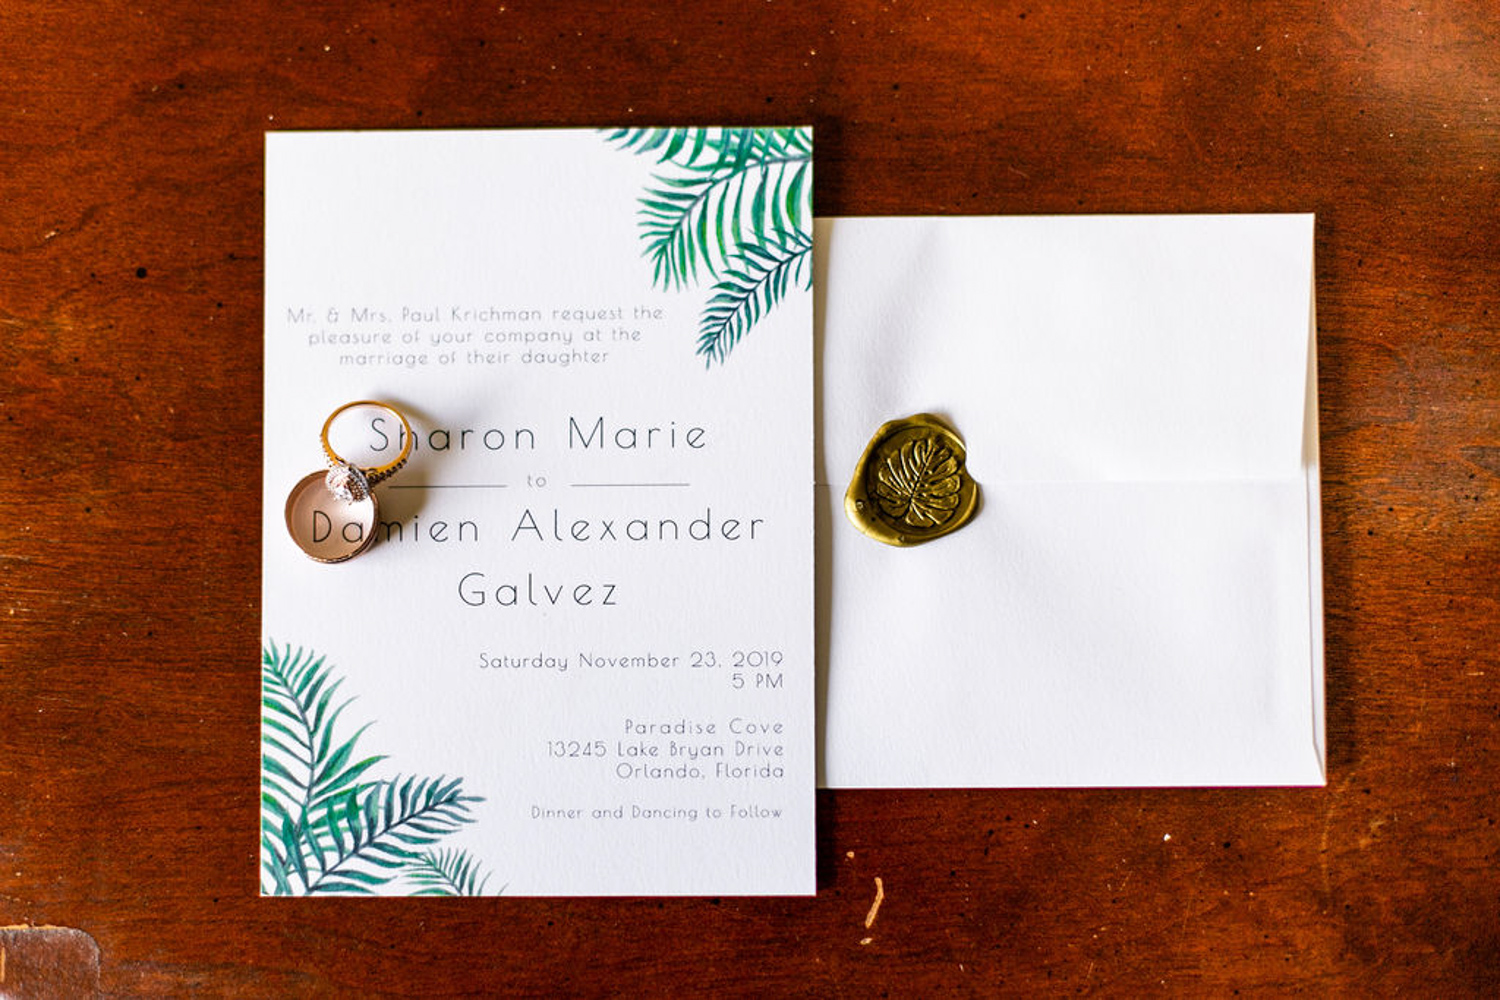 Palm leave wedding invitation with wedding bands and engagement ring